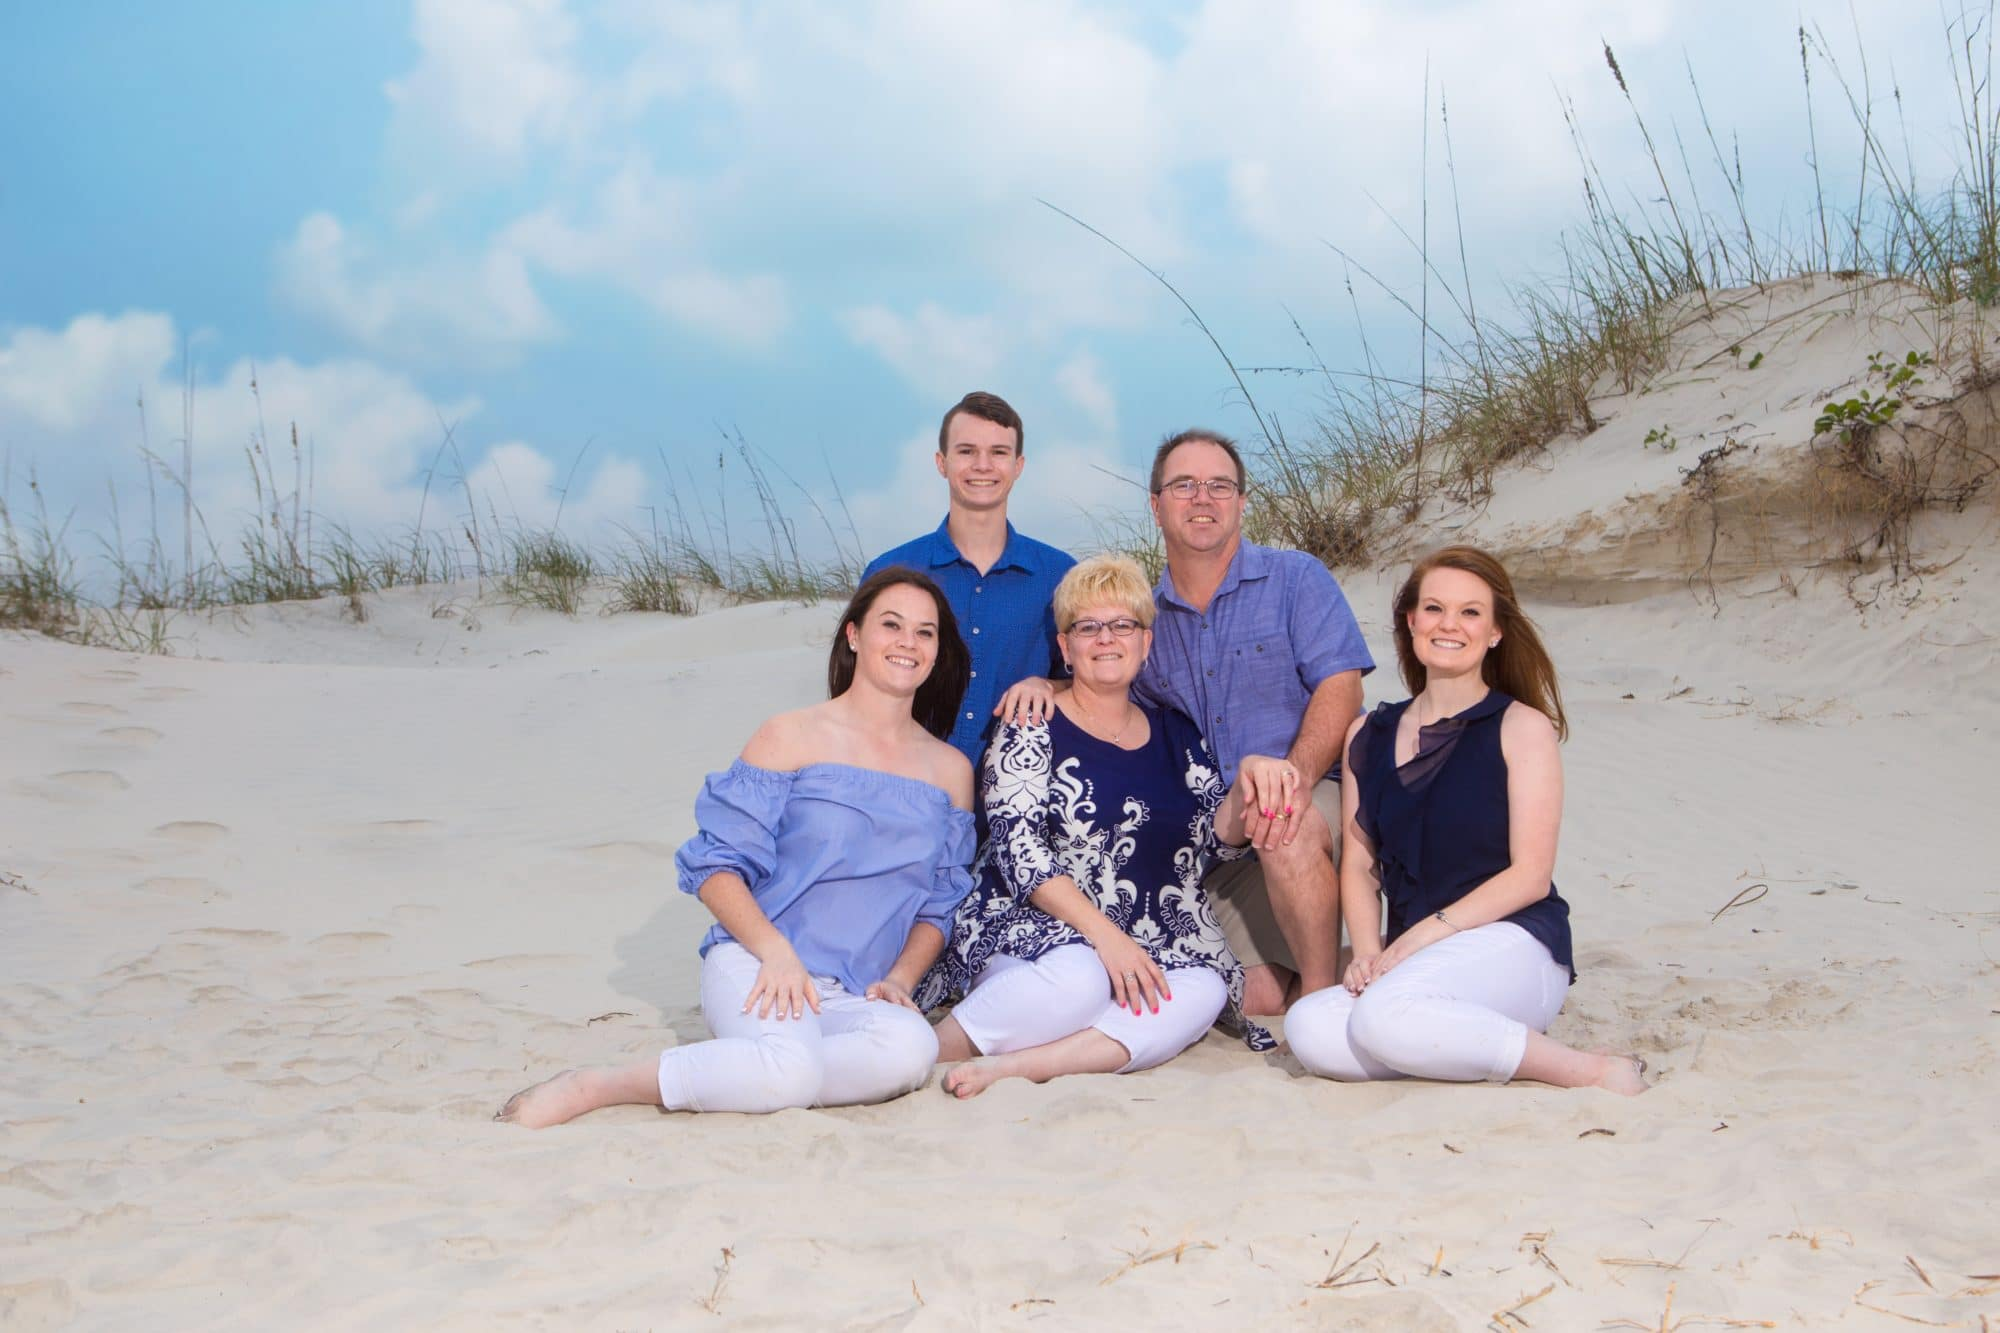 Ponce Inlet Family portrait by the dunes by Ponce Inlet photographer that specializes in Ponce Inlet photography